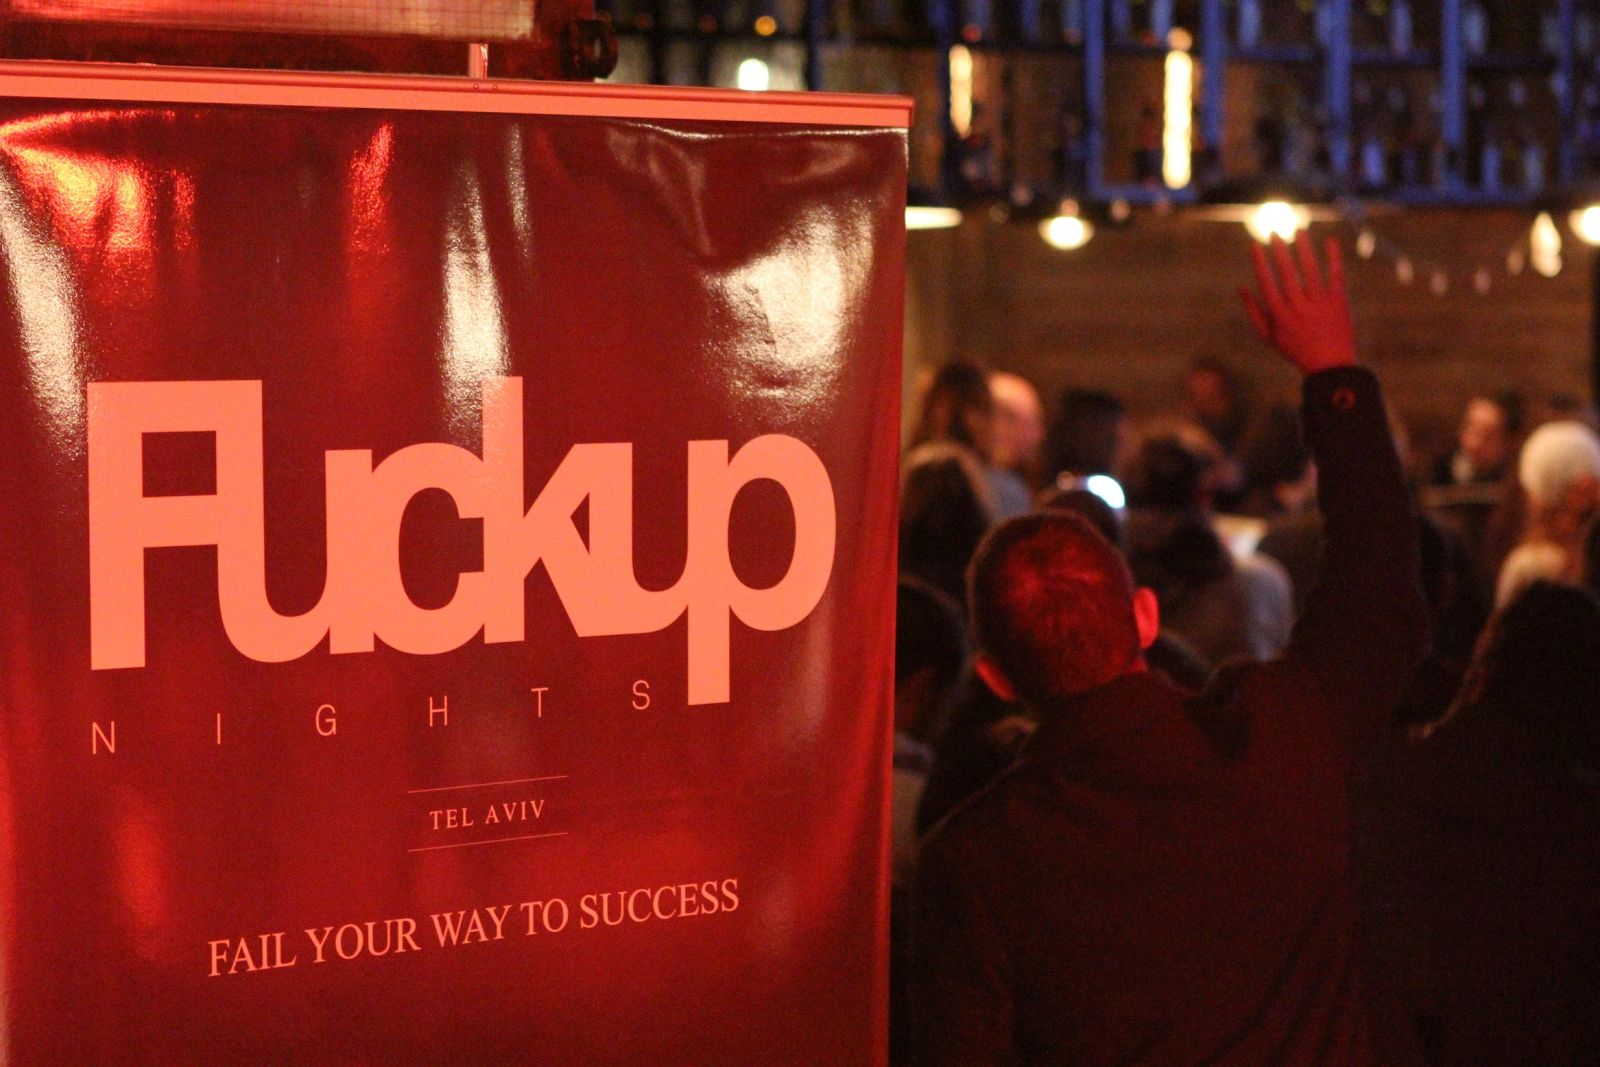 Encouraging a culture of dialogue in the entrepreneurial ecosystem in Tel Aviv on success and failure, while emphasizing that failure is part of the learning process. Photo courtesy of Fuckup Nights Tel Aviv